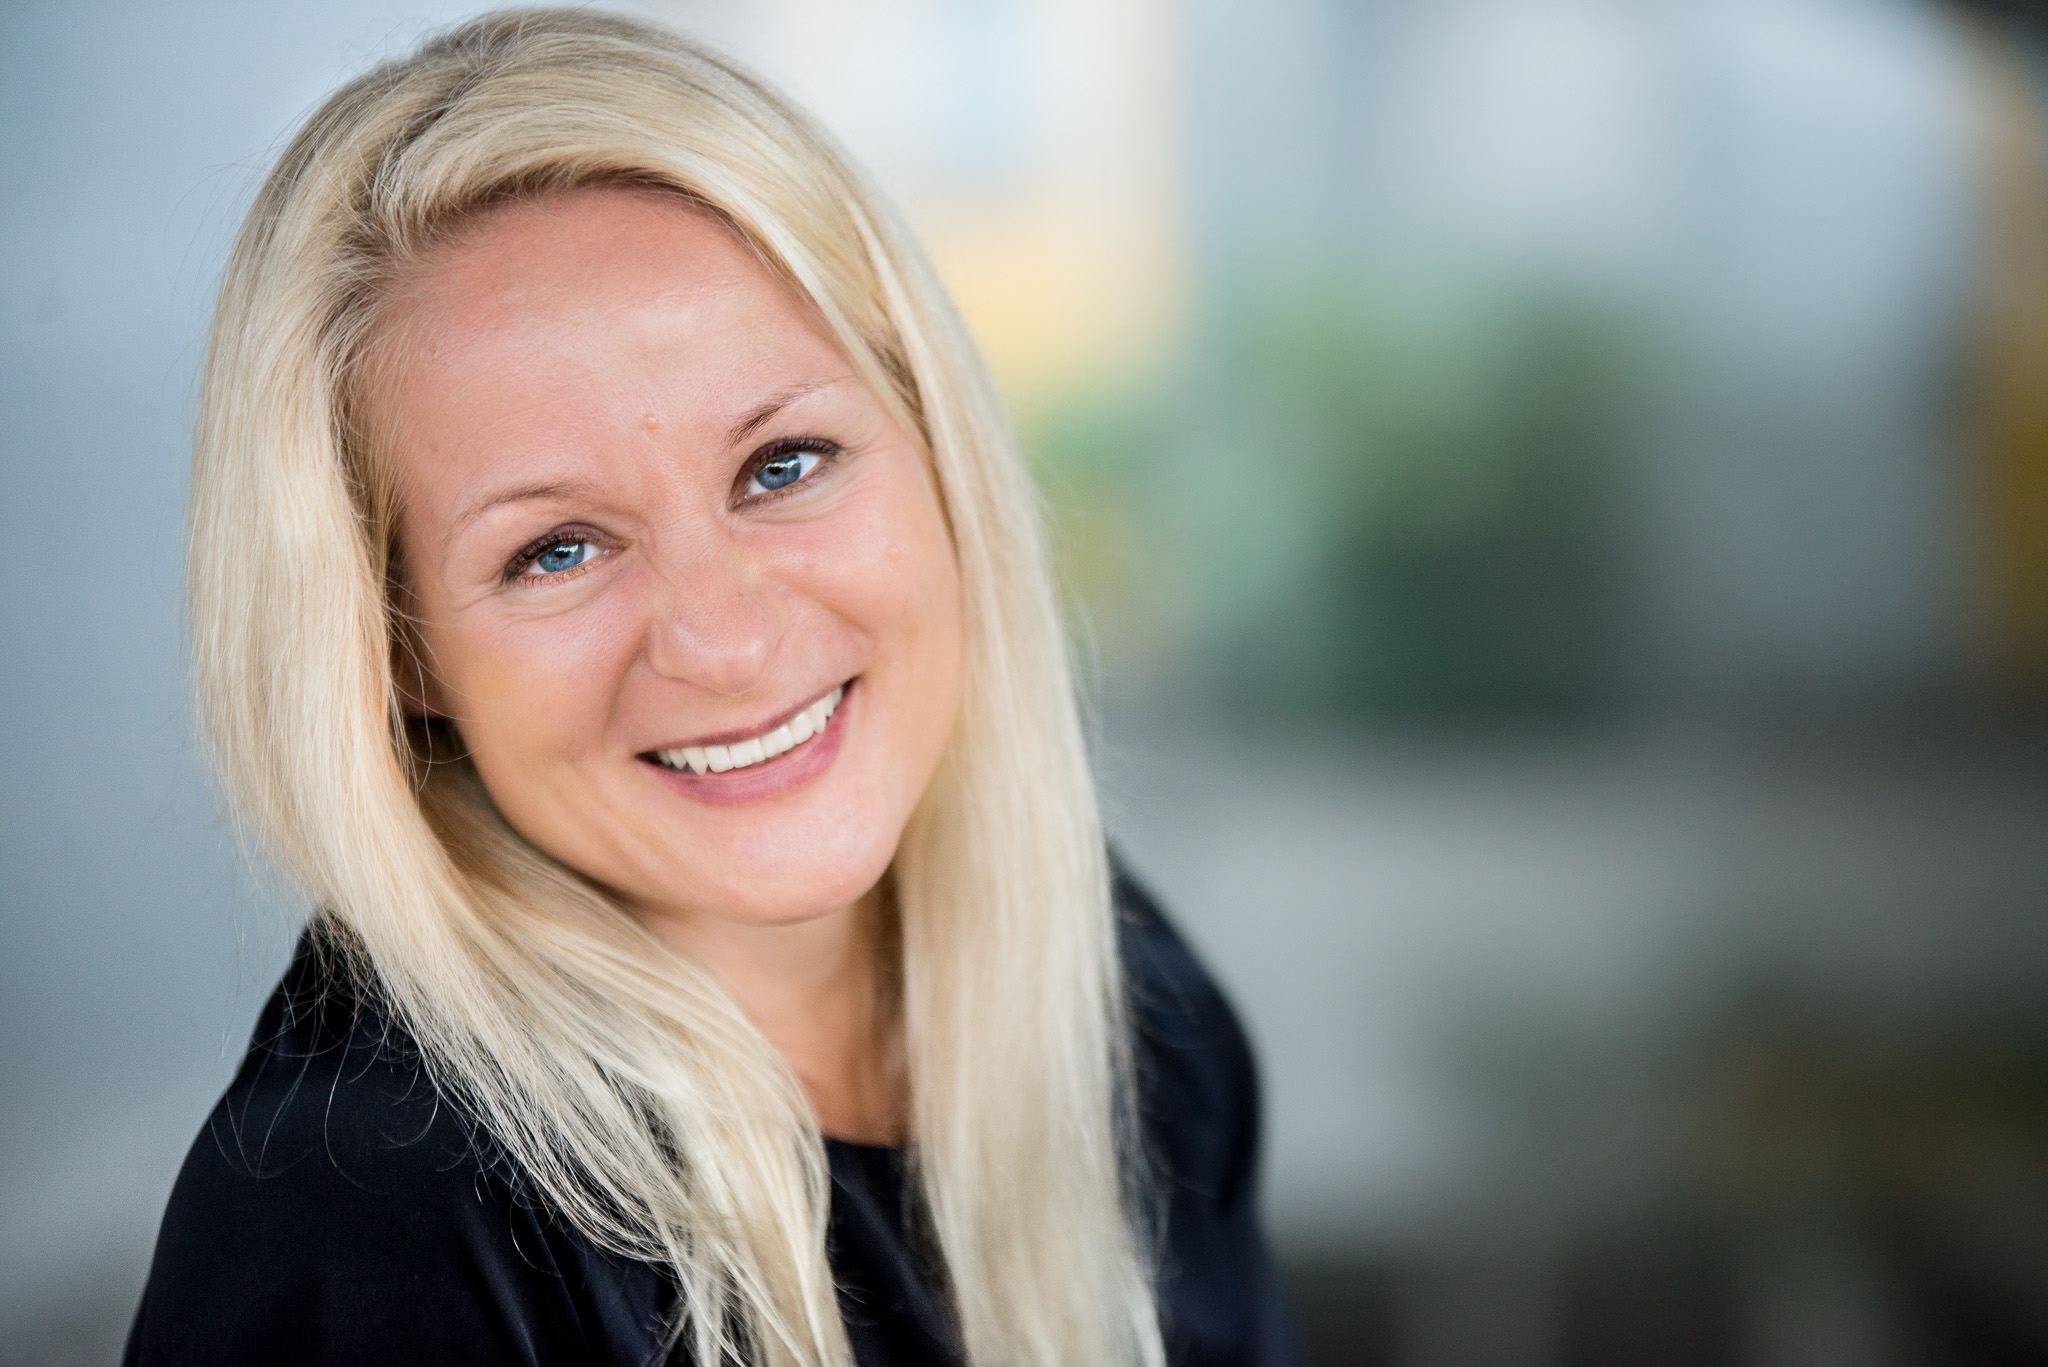 Corporate headshots and portrait in London & Brighton capture by Personal Portrait Brand Photographer